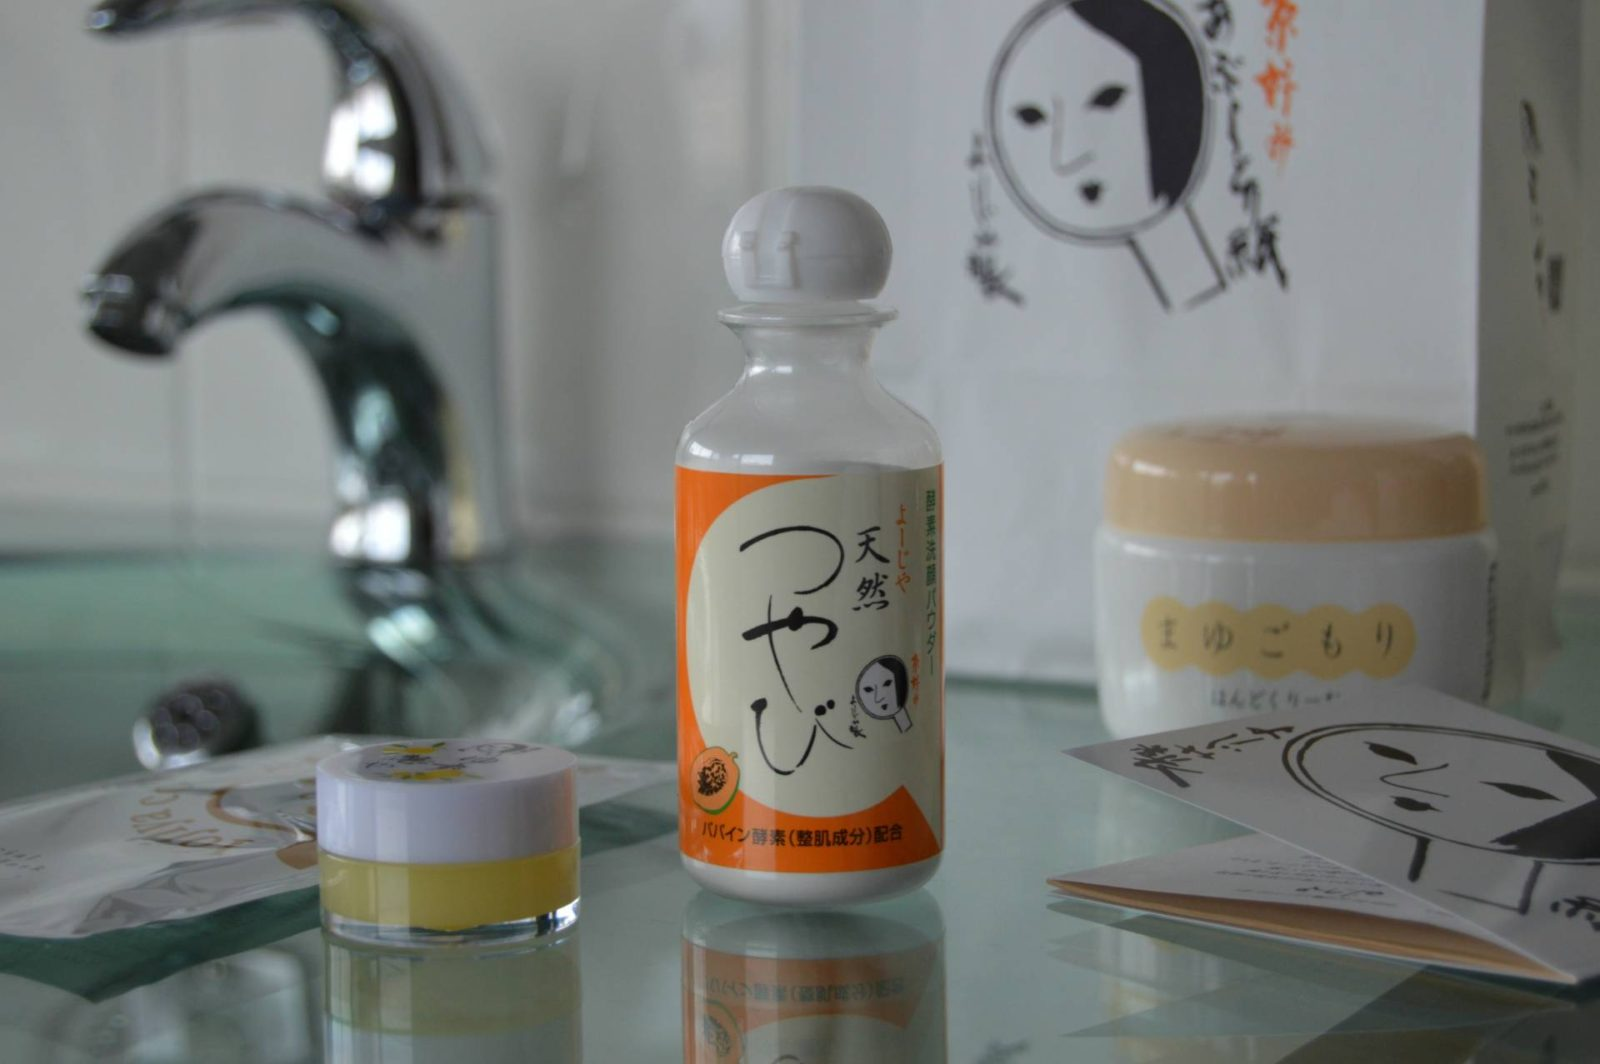 Yojiya Face Washing Powder – My Best Beauty Find in Kyoto, Japan